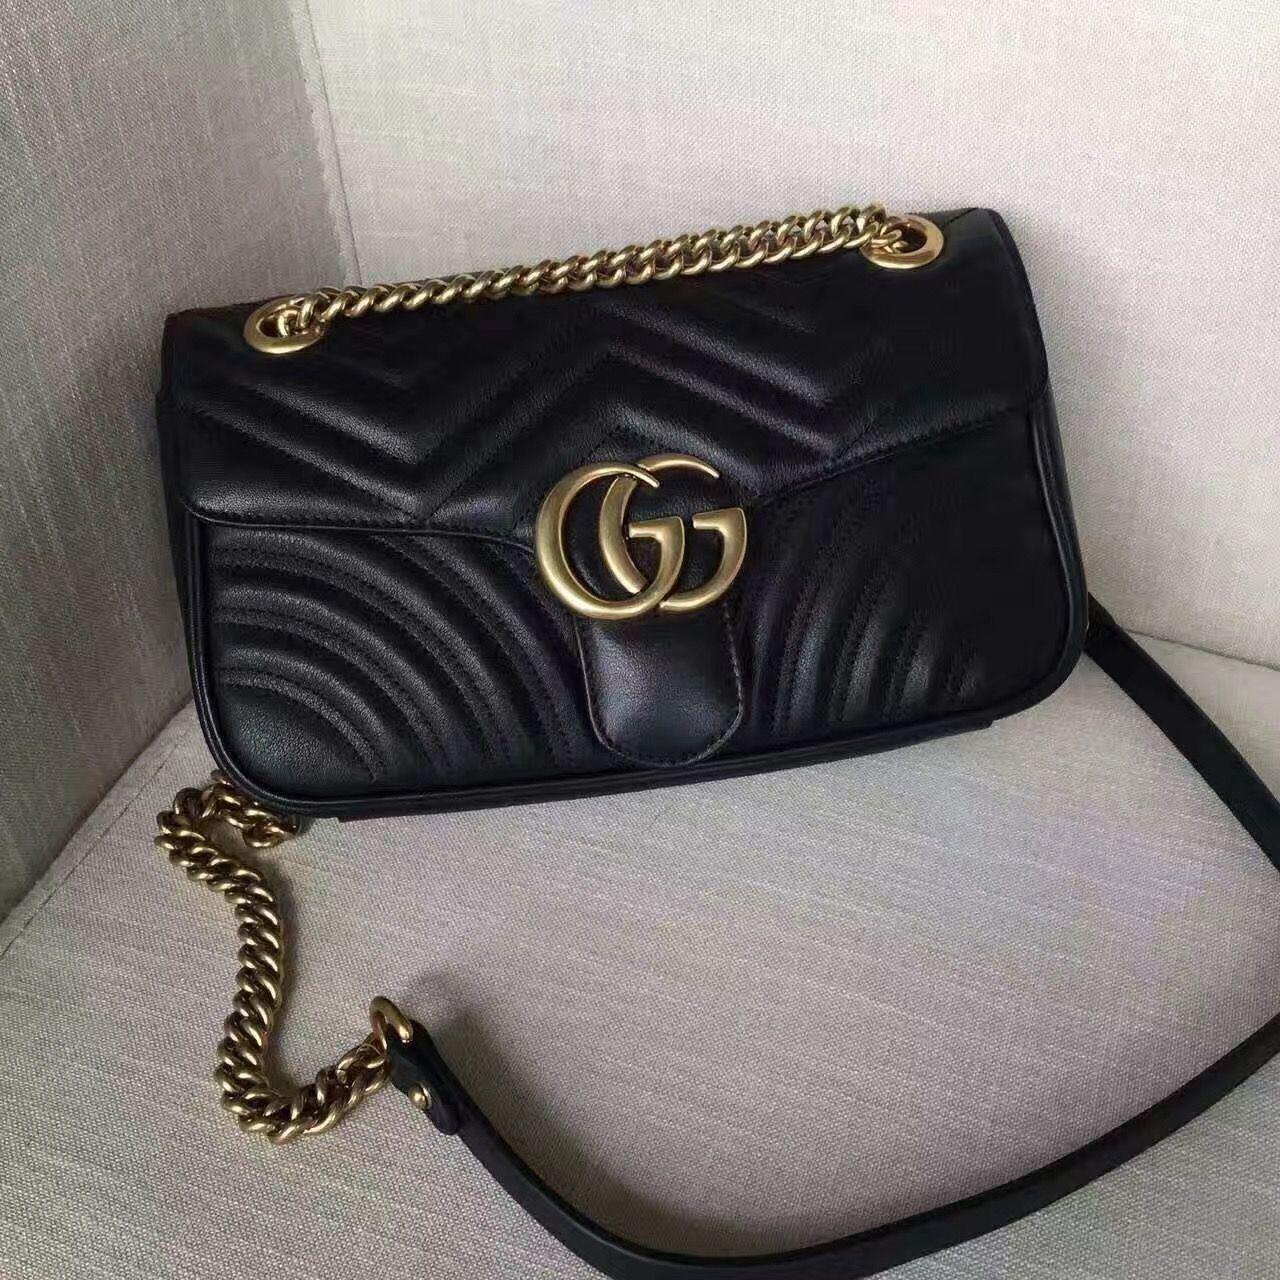 a65729818d79 Authentic Quality 1 1 Mirror Replica Gucci GG Marmont Matelassé ...